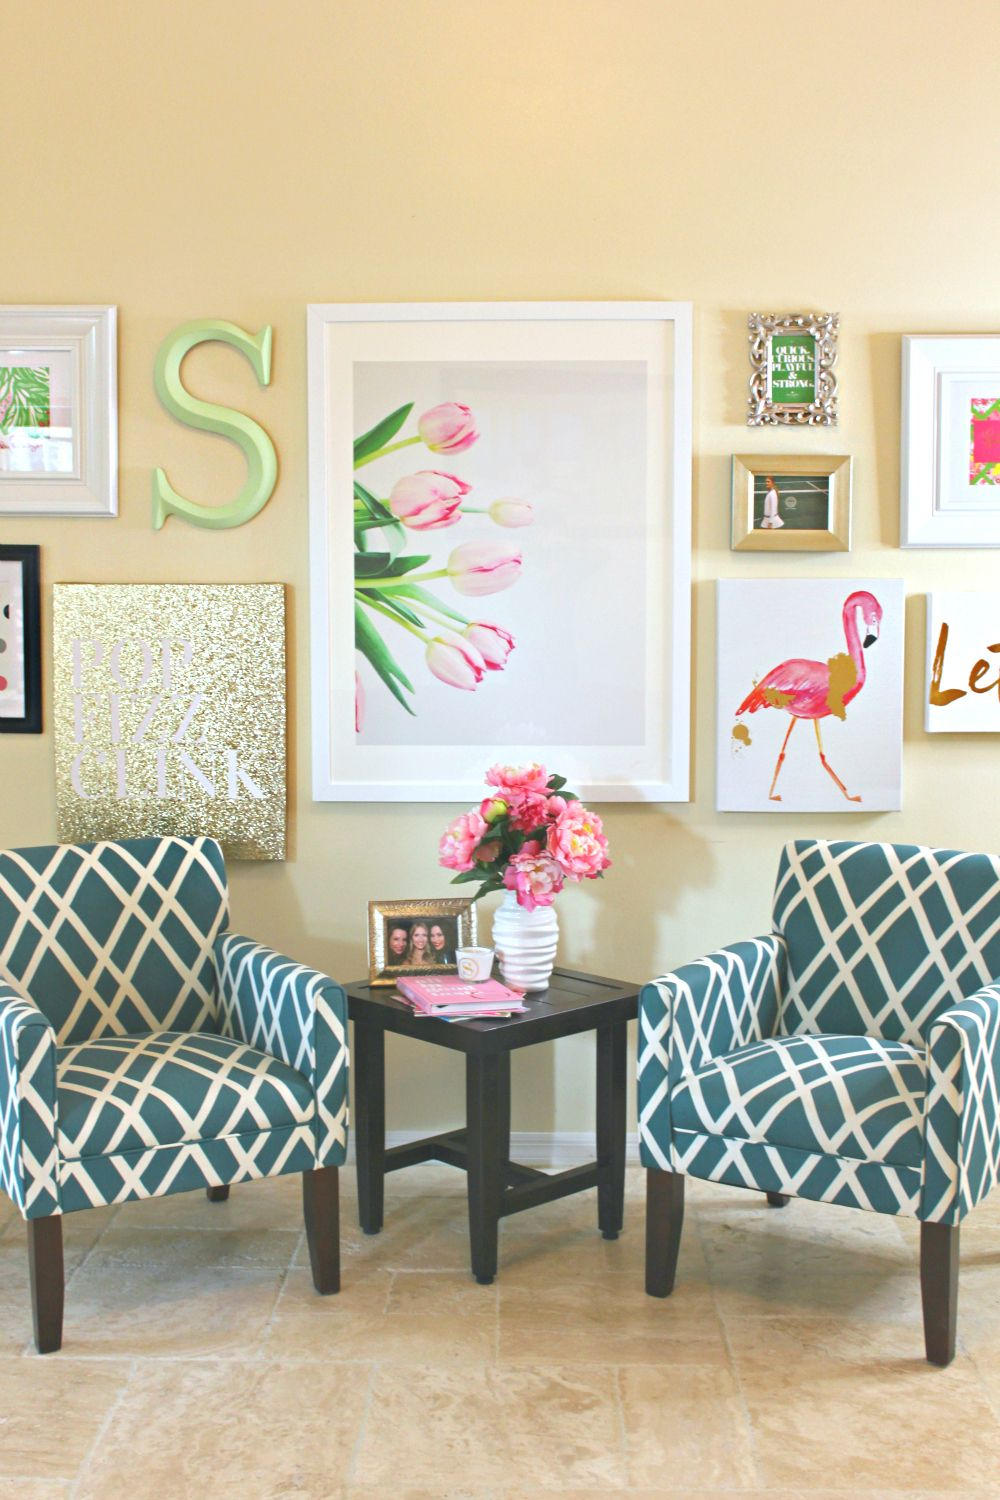 Lilly Pulitzer-Inspired Wall Art Collage | Art for the ...